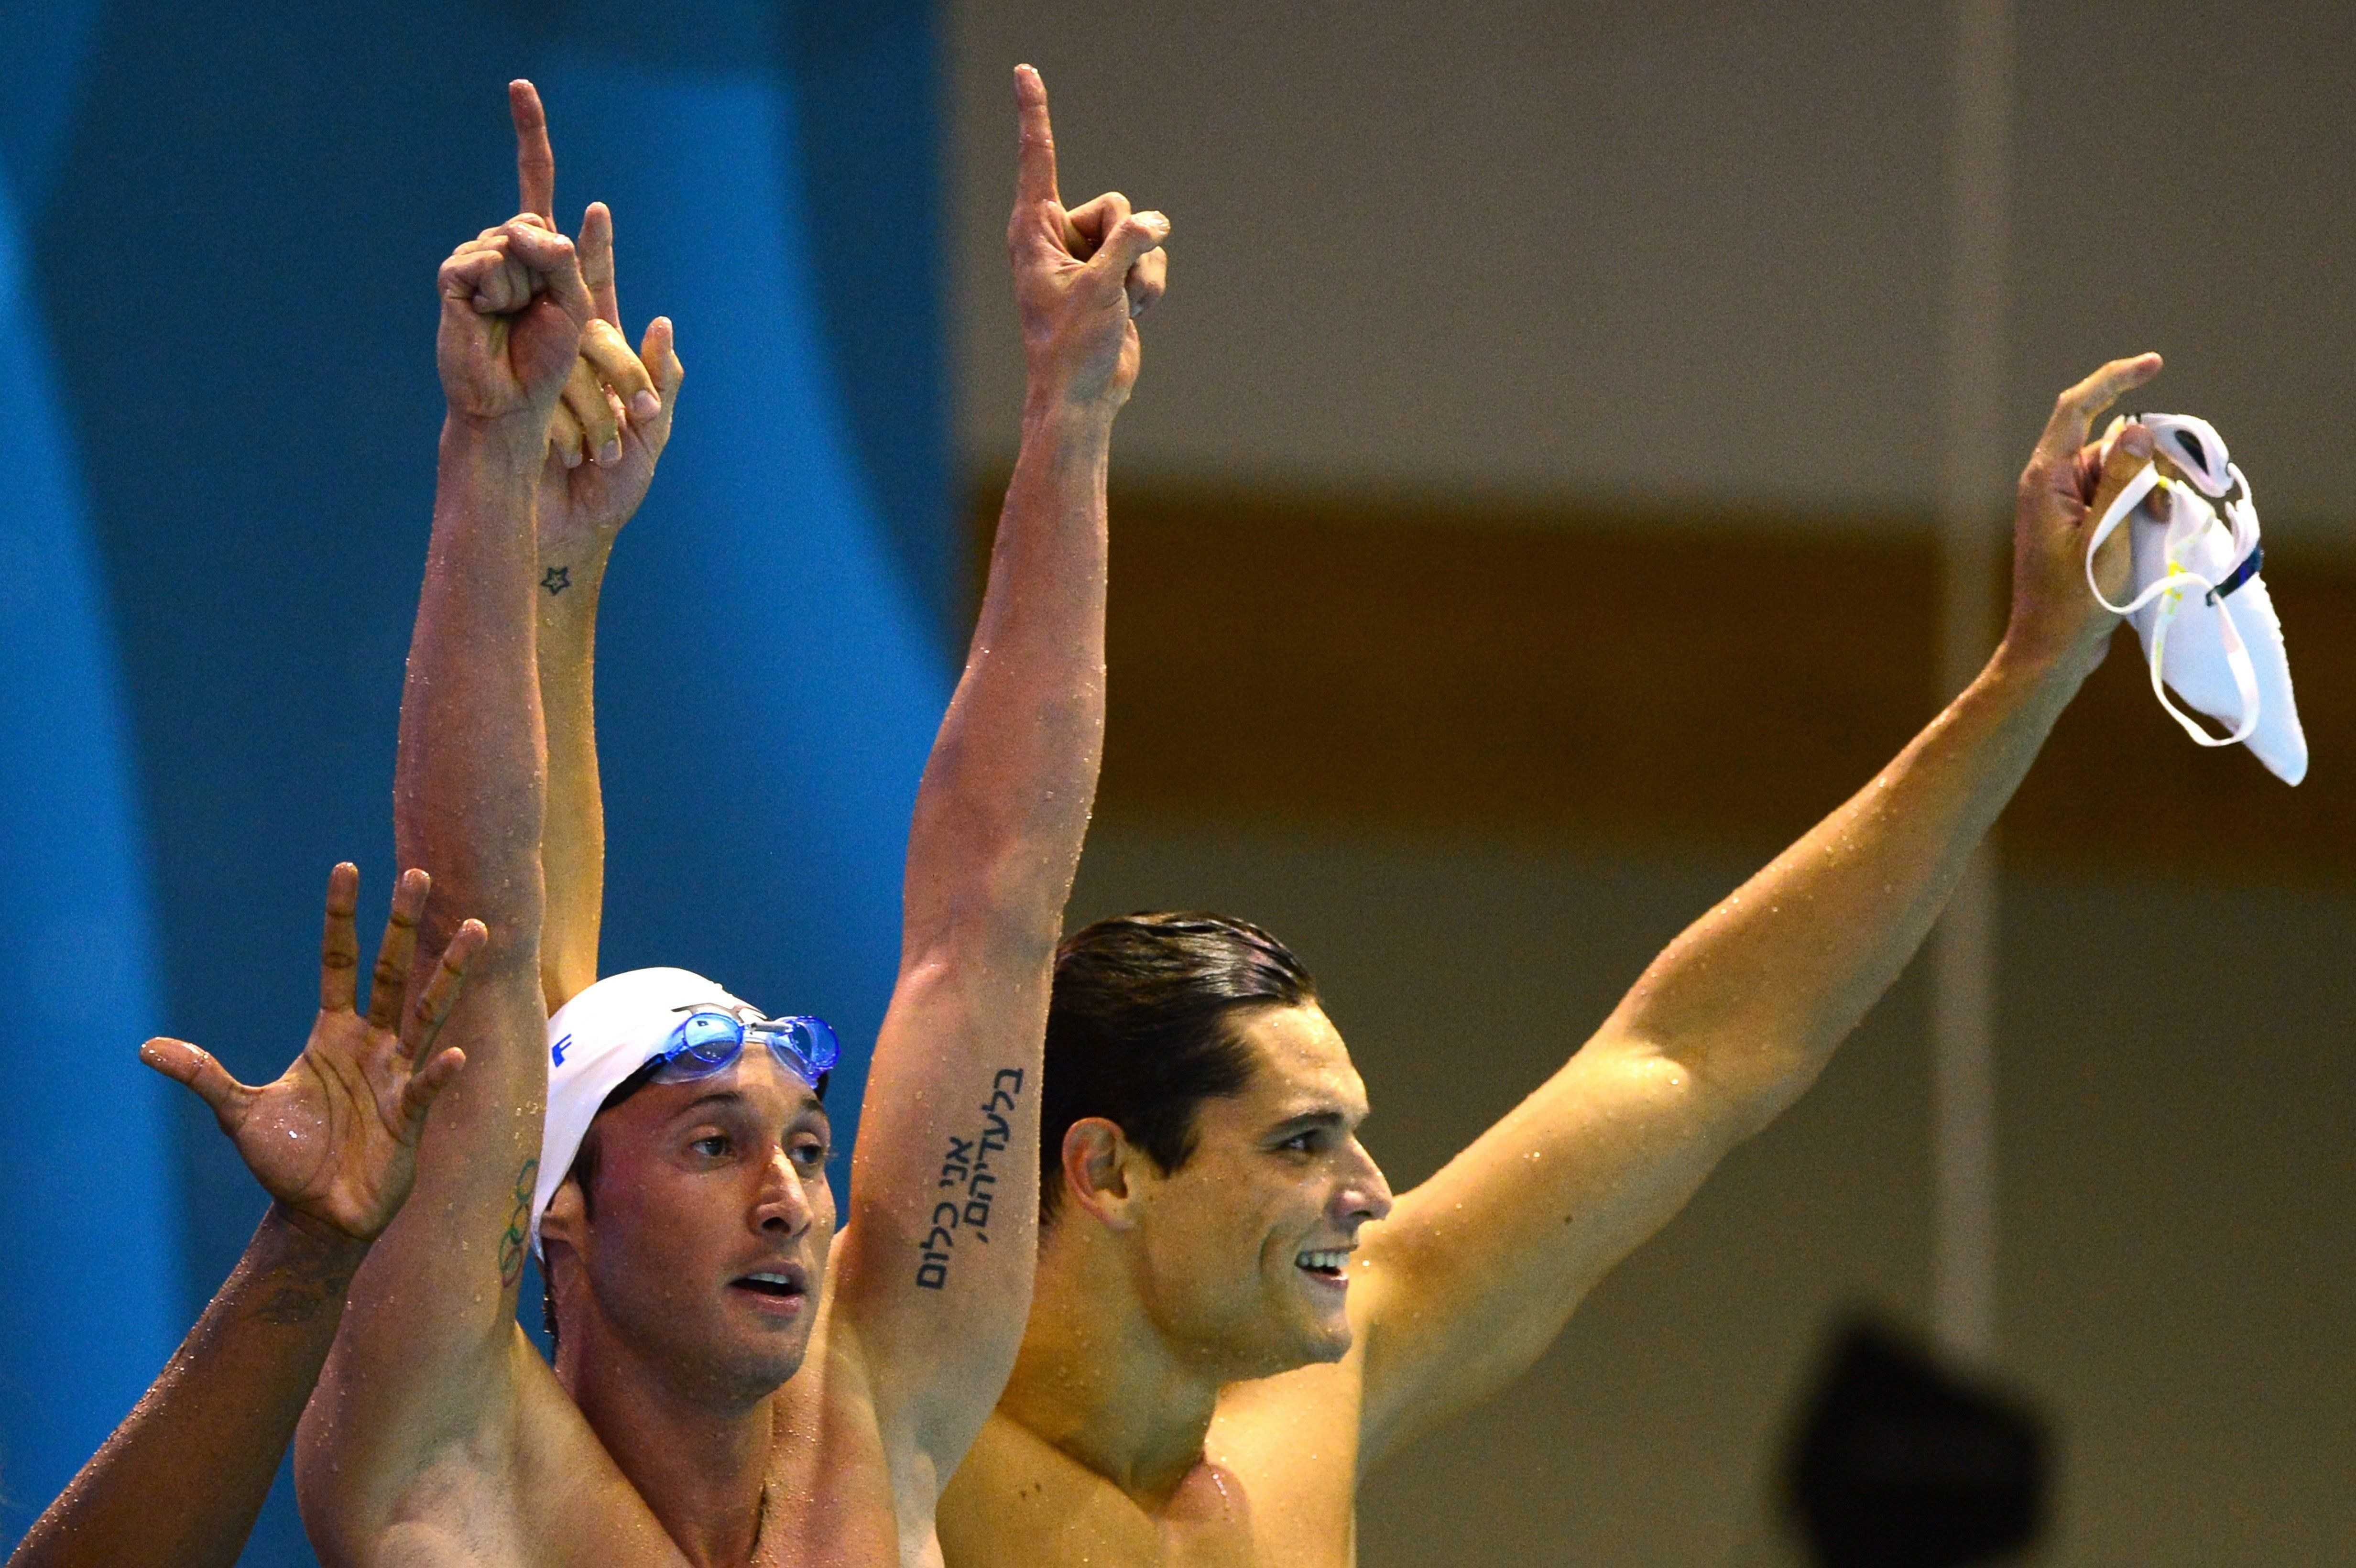 Gilot's tattoo can be seen in this photo from the 32nd LEN European swimming championships on August 18, 2014 in Berlin.